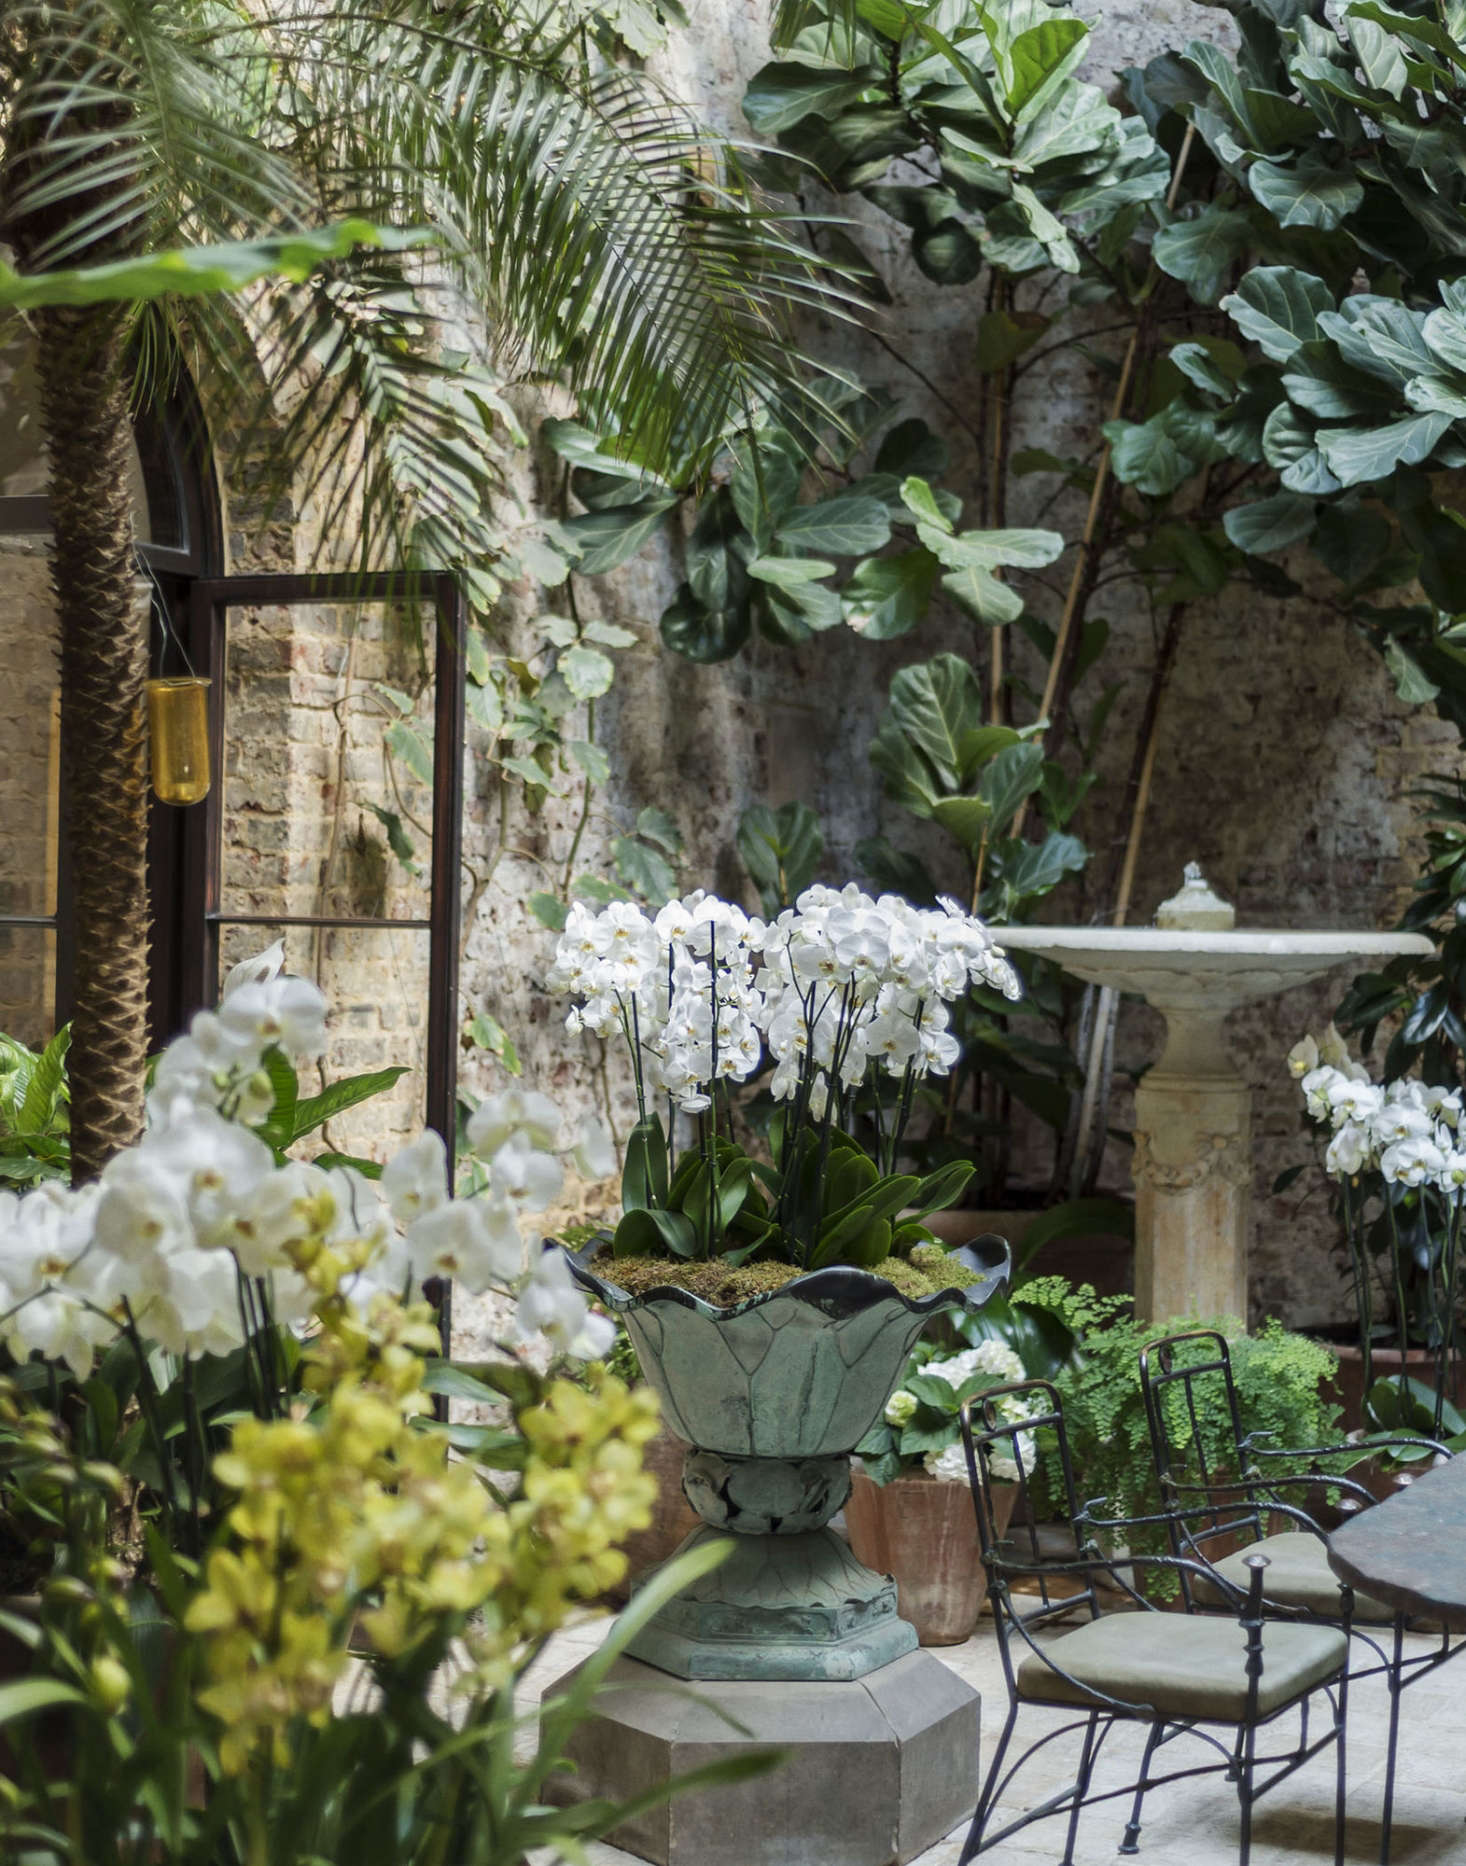 Uniacke chooses all the orchids and likes